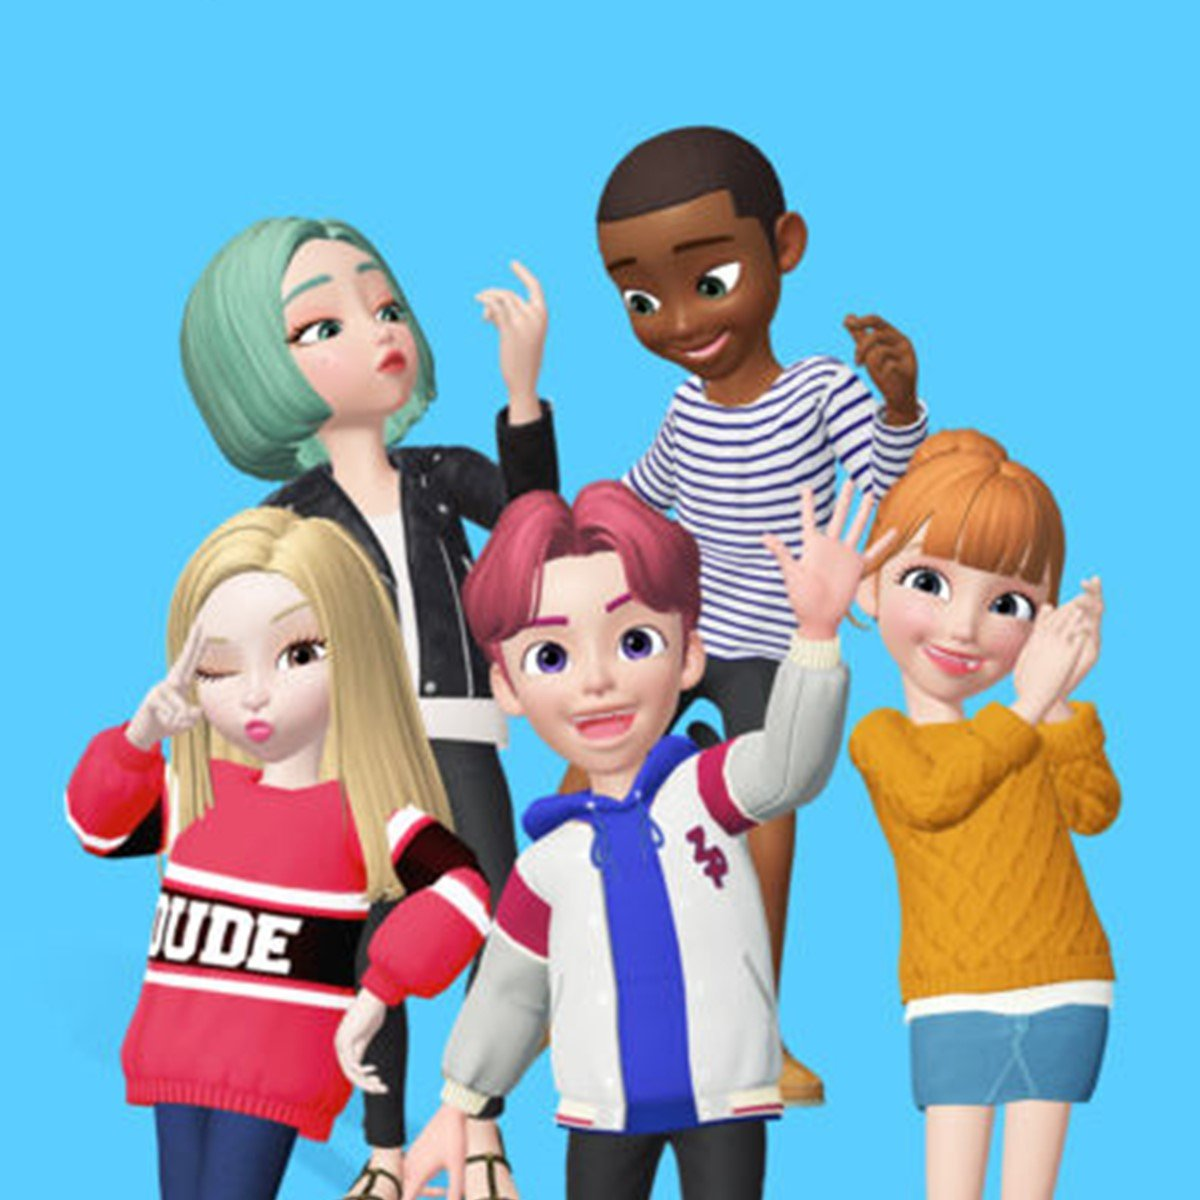 Zepeto hacked version